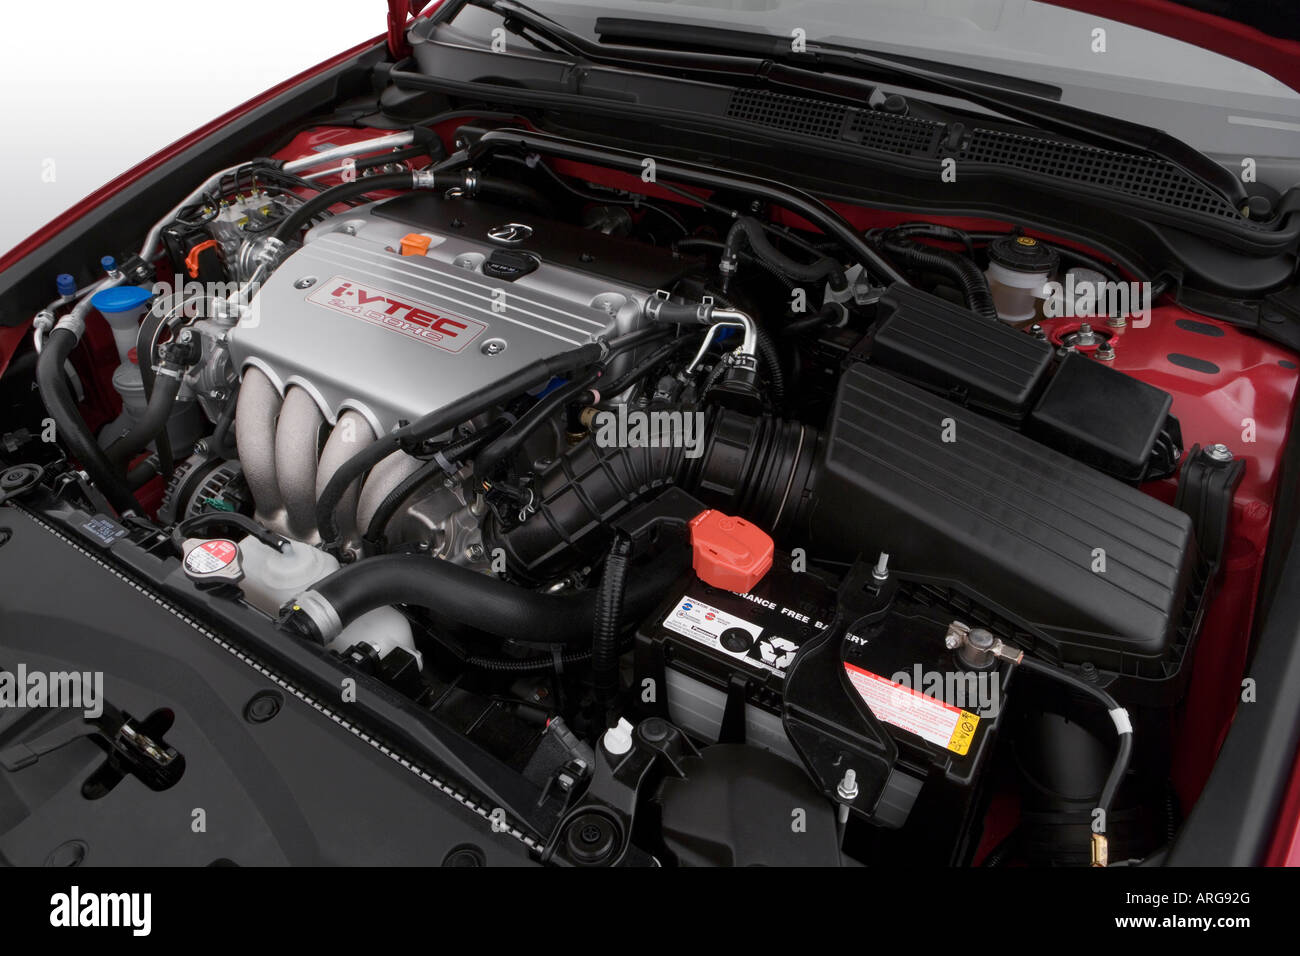 Acura TSX In Red Engine Stock Photo Alamy - Acura tsx engine